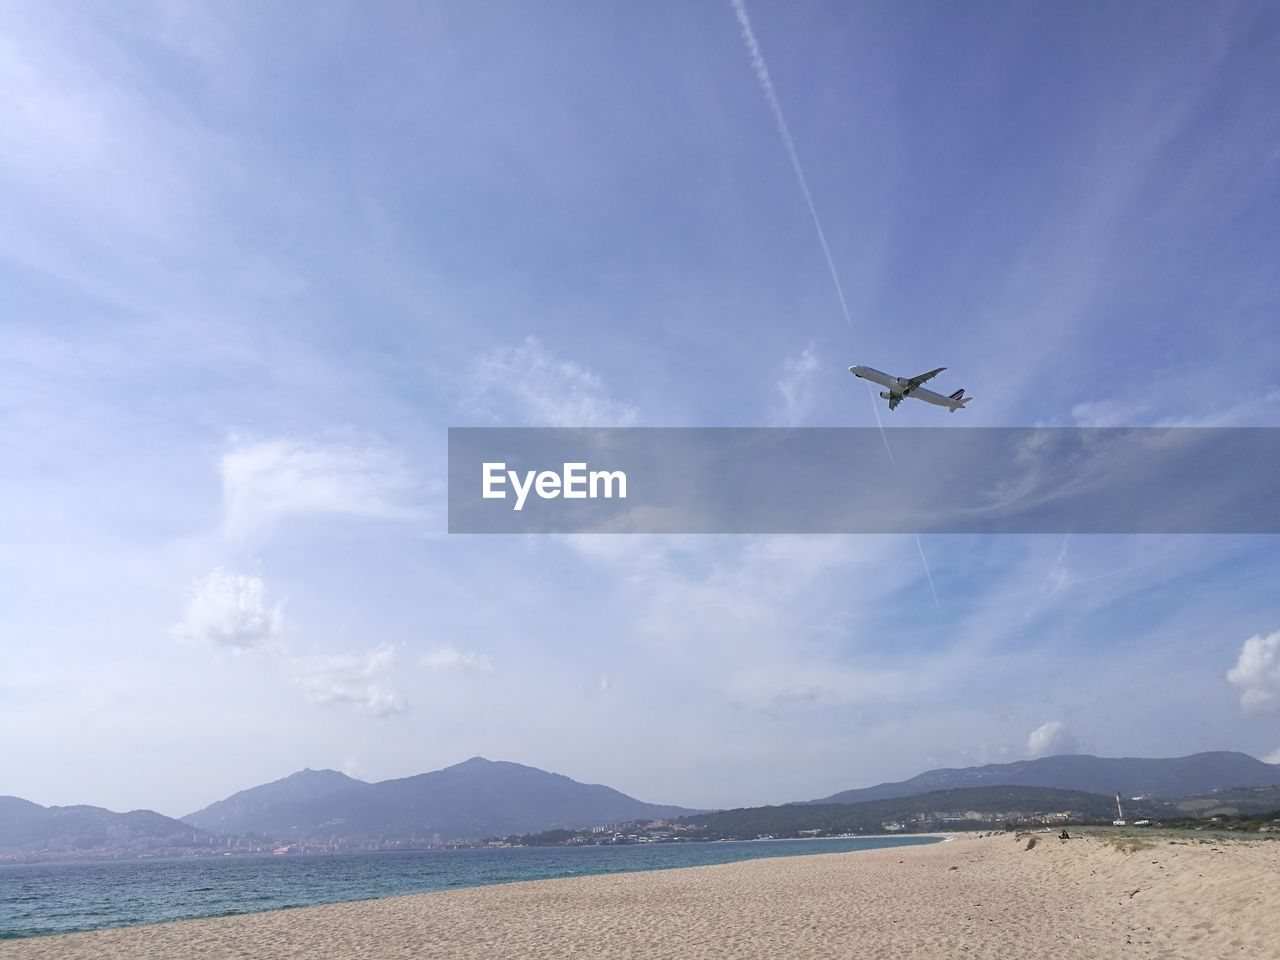 sky, cloud - sky, mode of transportation, transportation, airplane, flying, air vehicle, beauty in nature, nature, travel, scenics - nature, mountain, no people, day, on the move, low angle view, non-urban scene, mid-air, motion, outdoors, plane